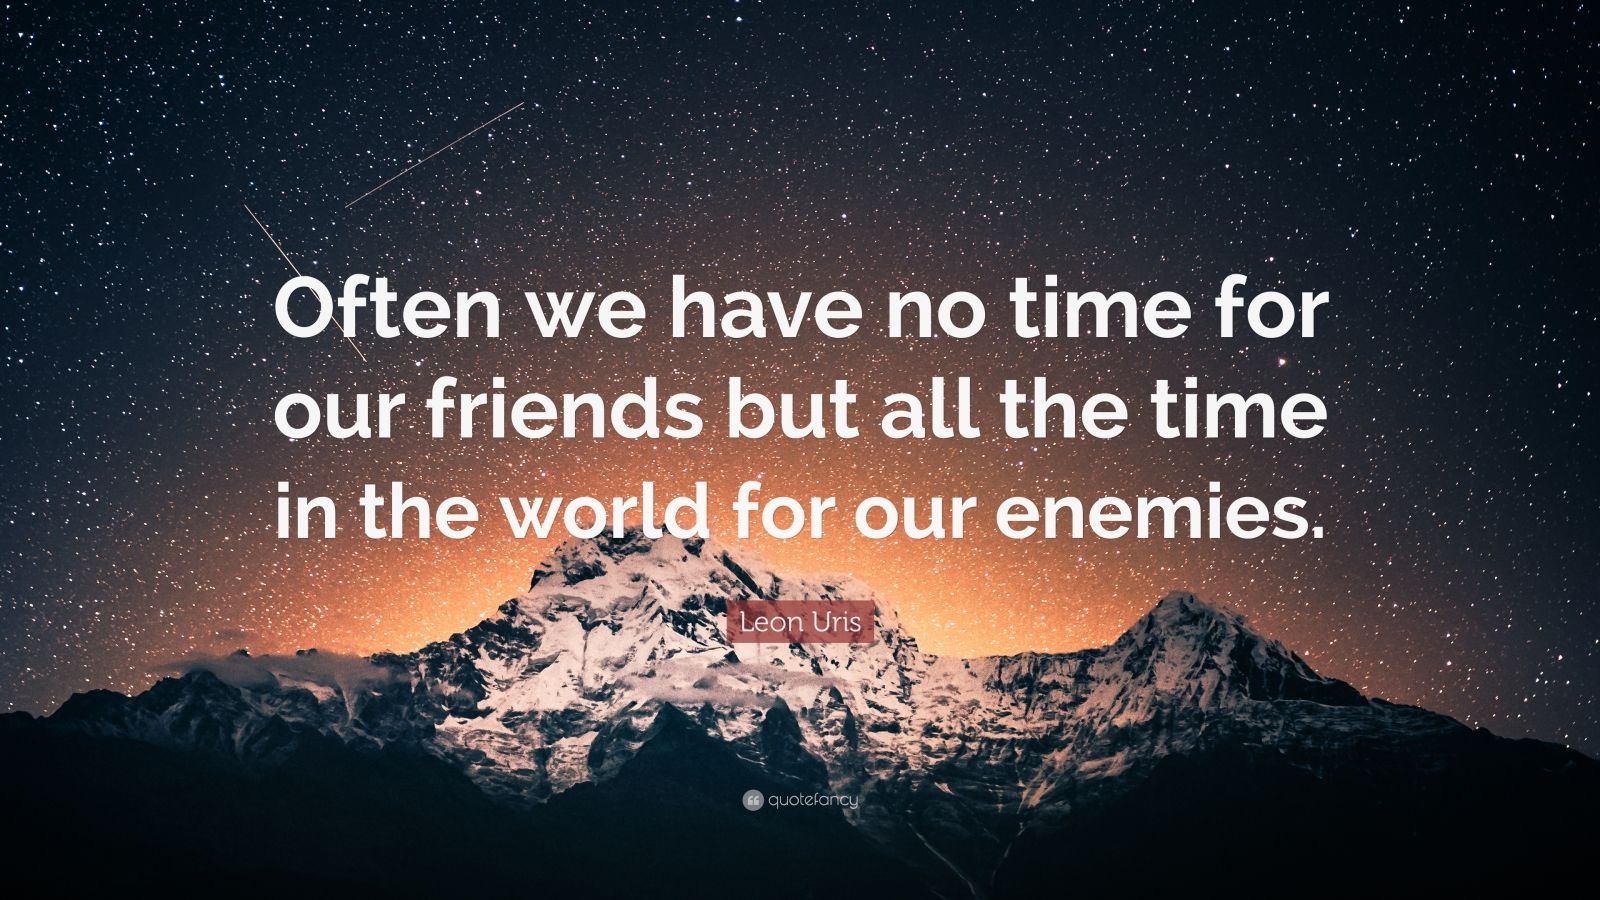 """Leon Uris Quote: """"Often we have no time for our friends but all the time in the world for our enemies."""""""